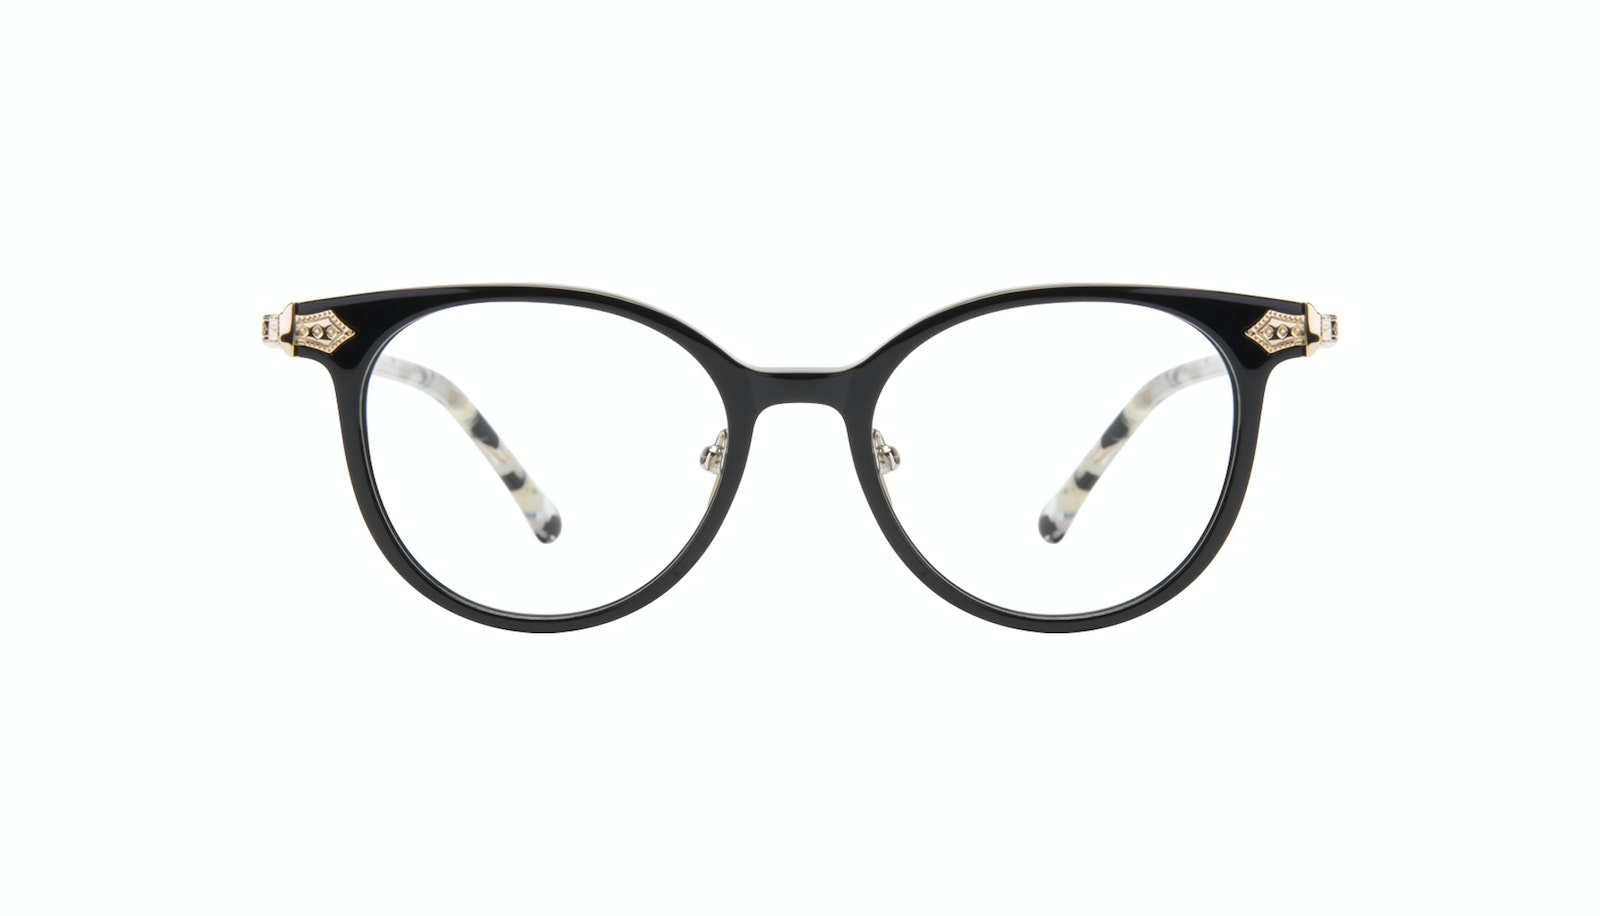 Affordable Fashion Glasses Round Eyeglasses Women Gem Onyx Marble